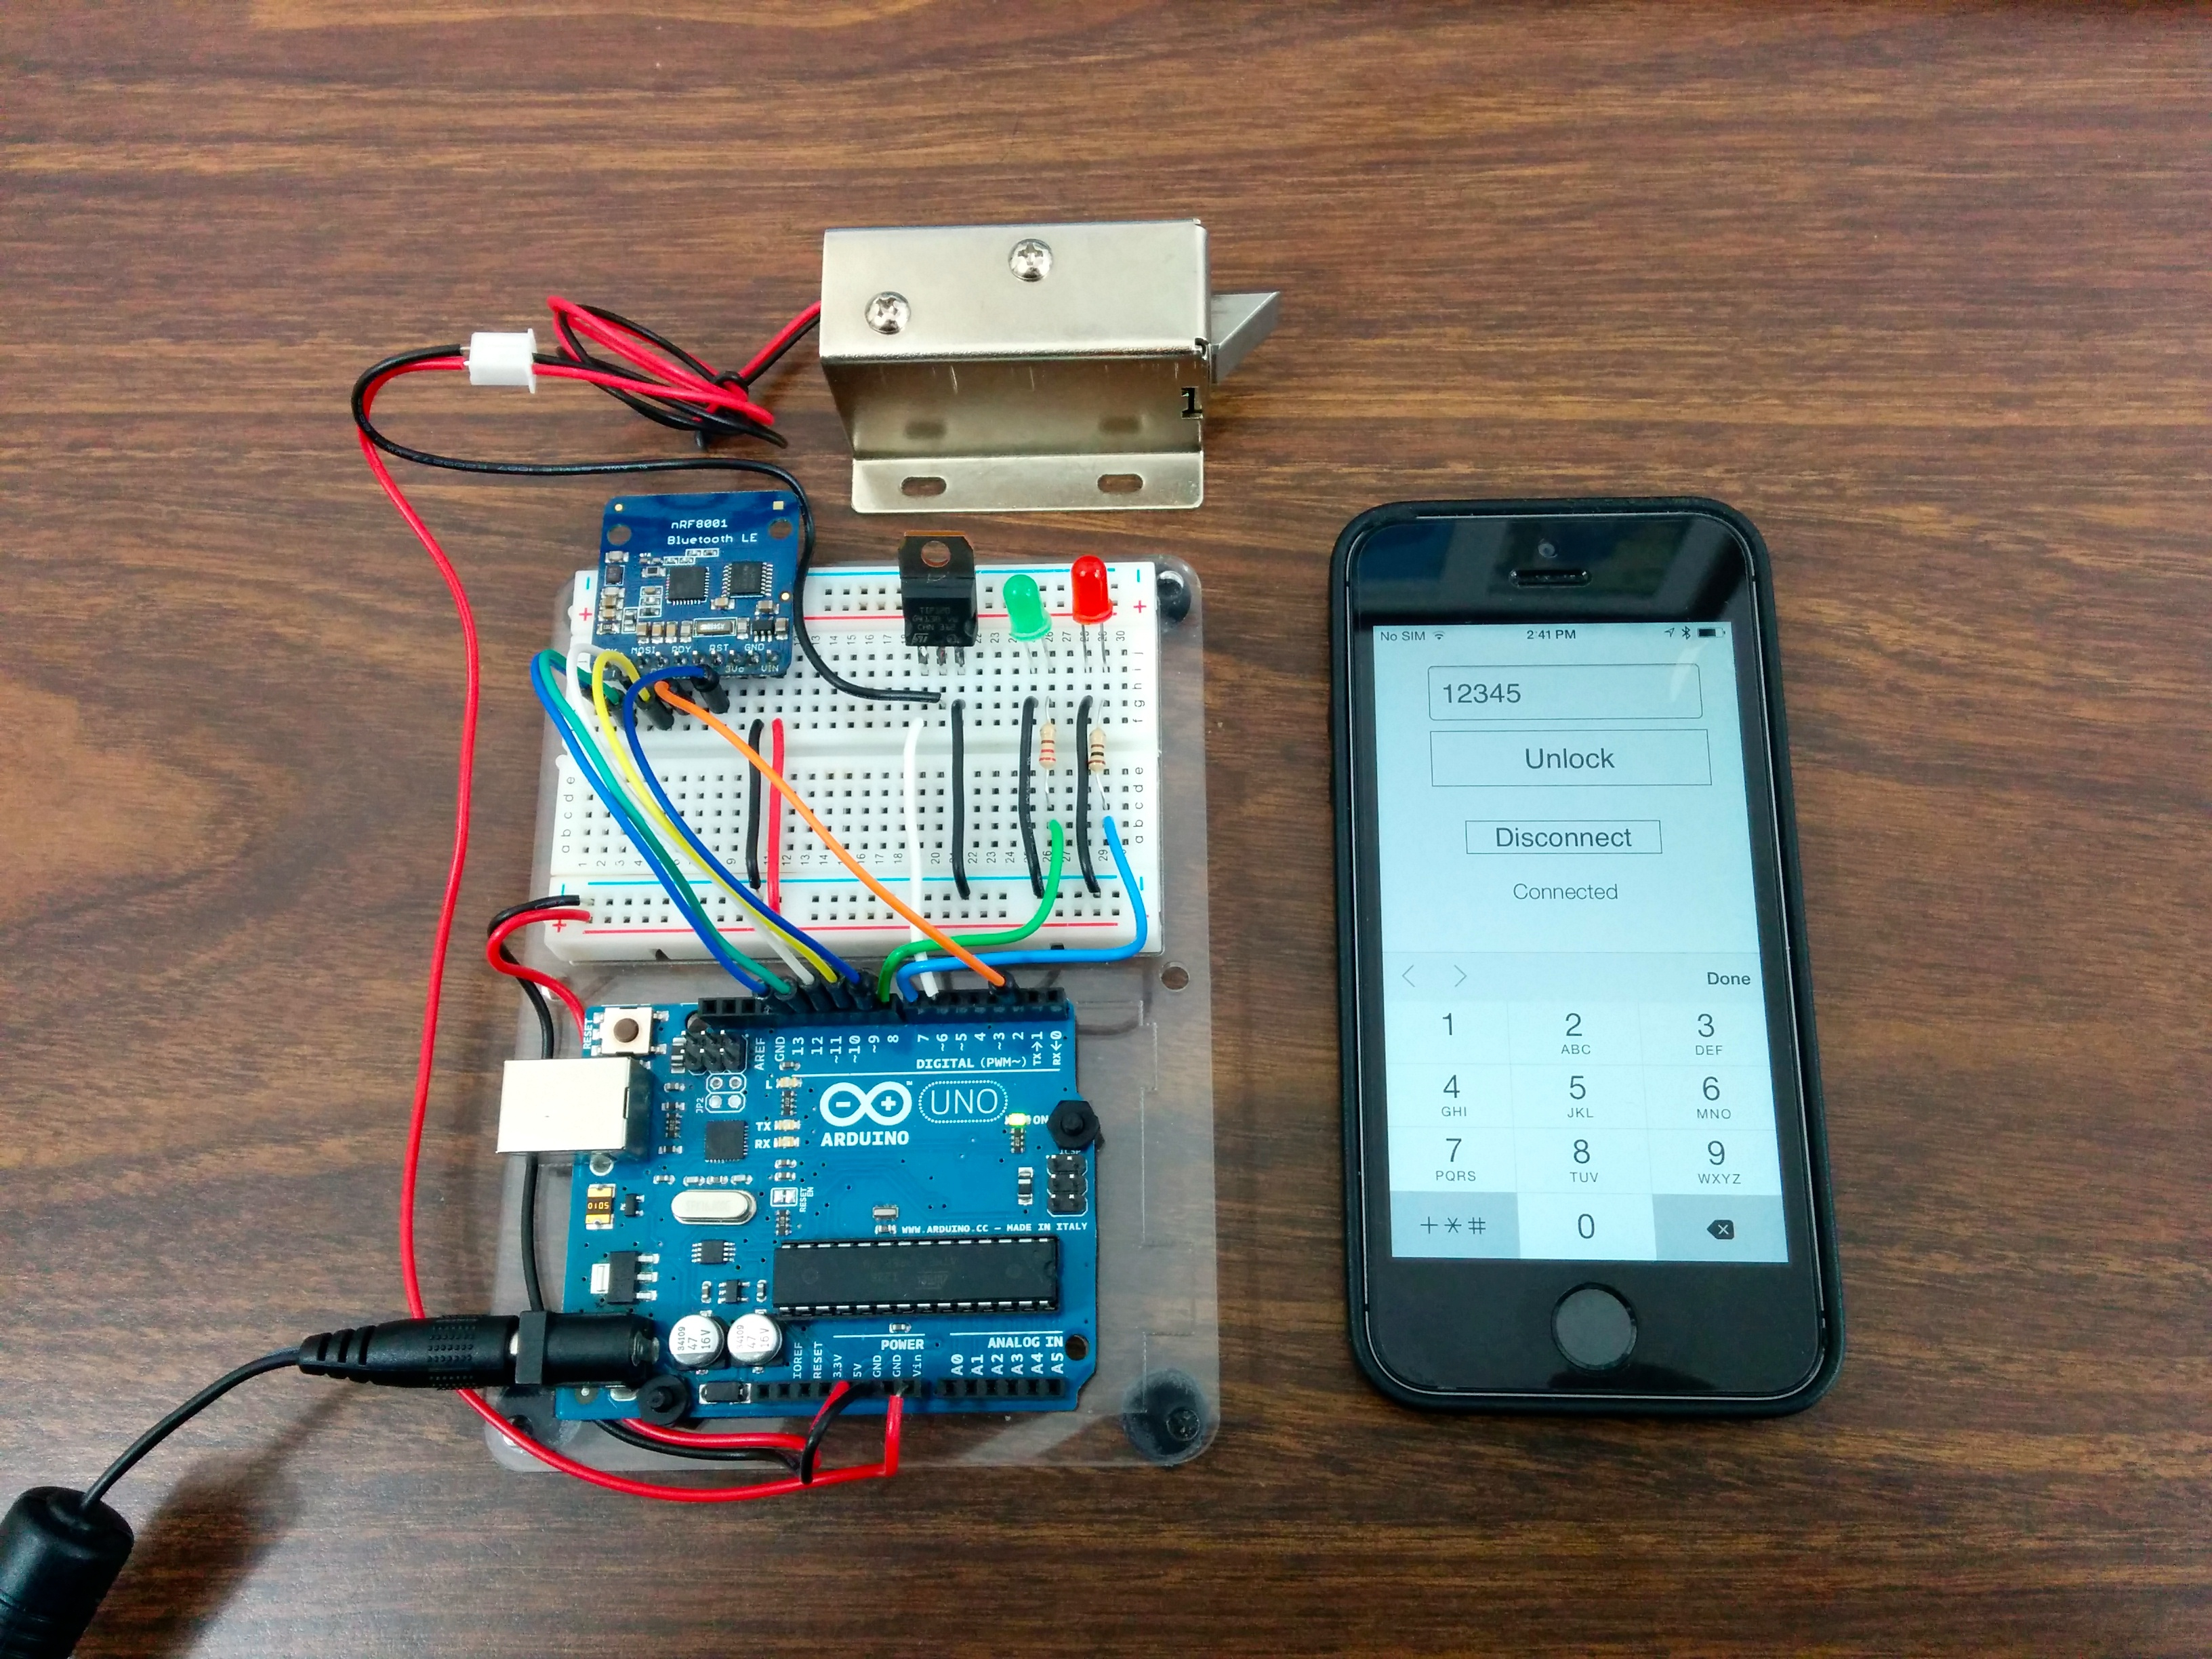 Controlling A Lock With An Arduino And Bluetooth Le Make Digital Door Password Based Electronic Code Using 8051